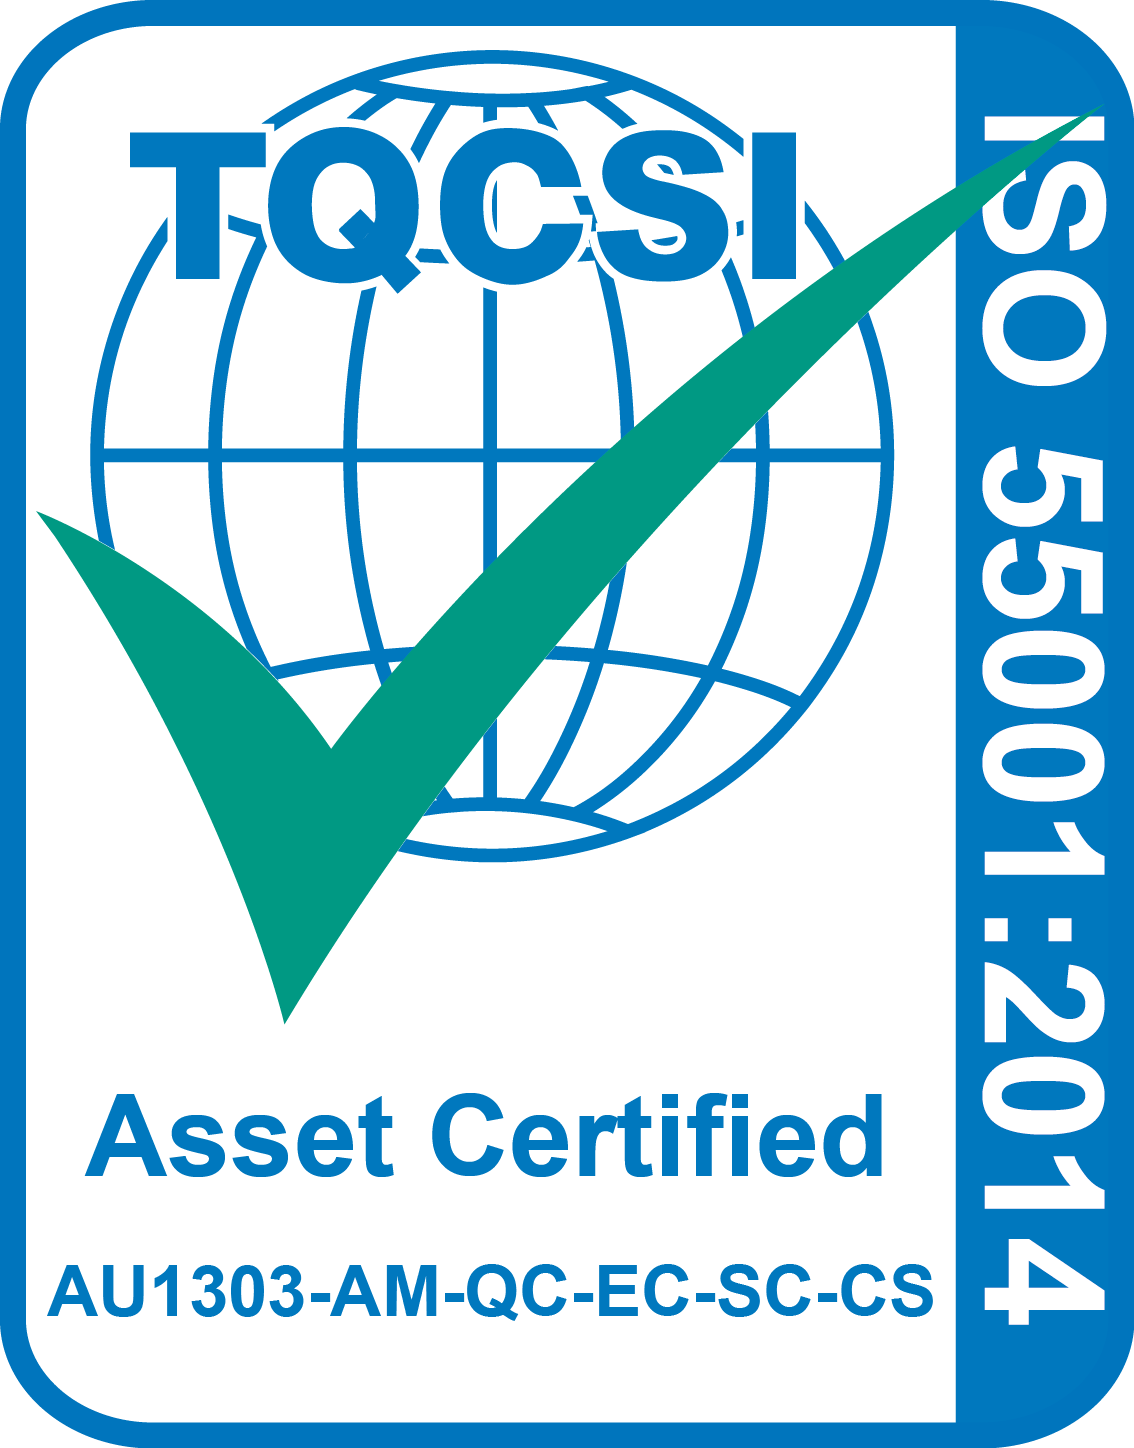 ISO 55001 Certification Mark.png